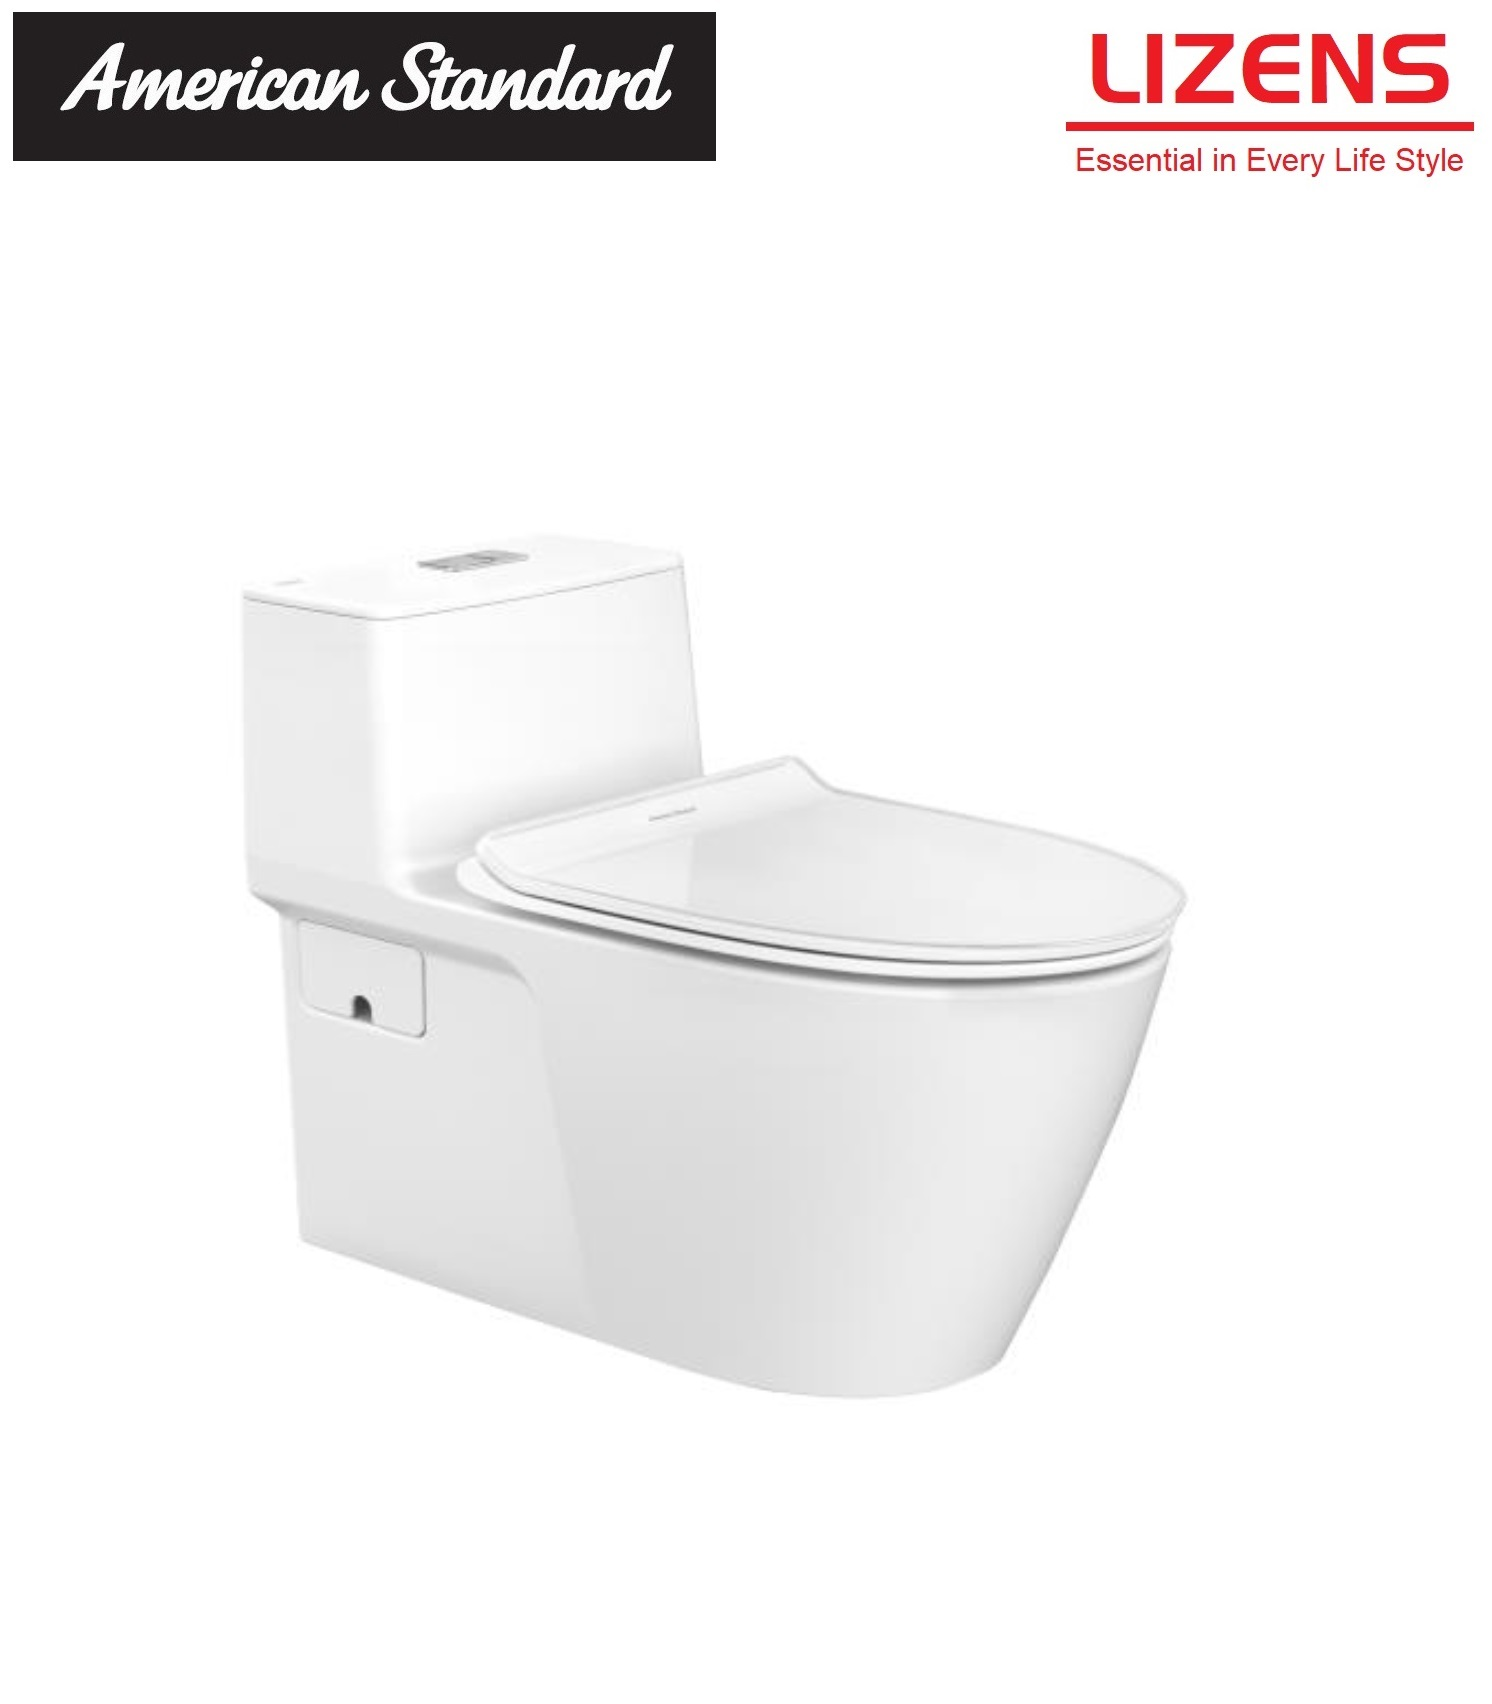 Picture of: American Standard Acacia Supasleek One Piece Toilet Bowl Lazada Singapore